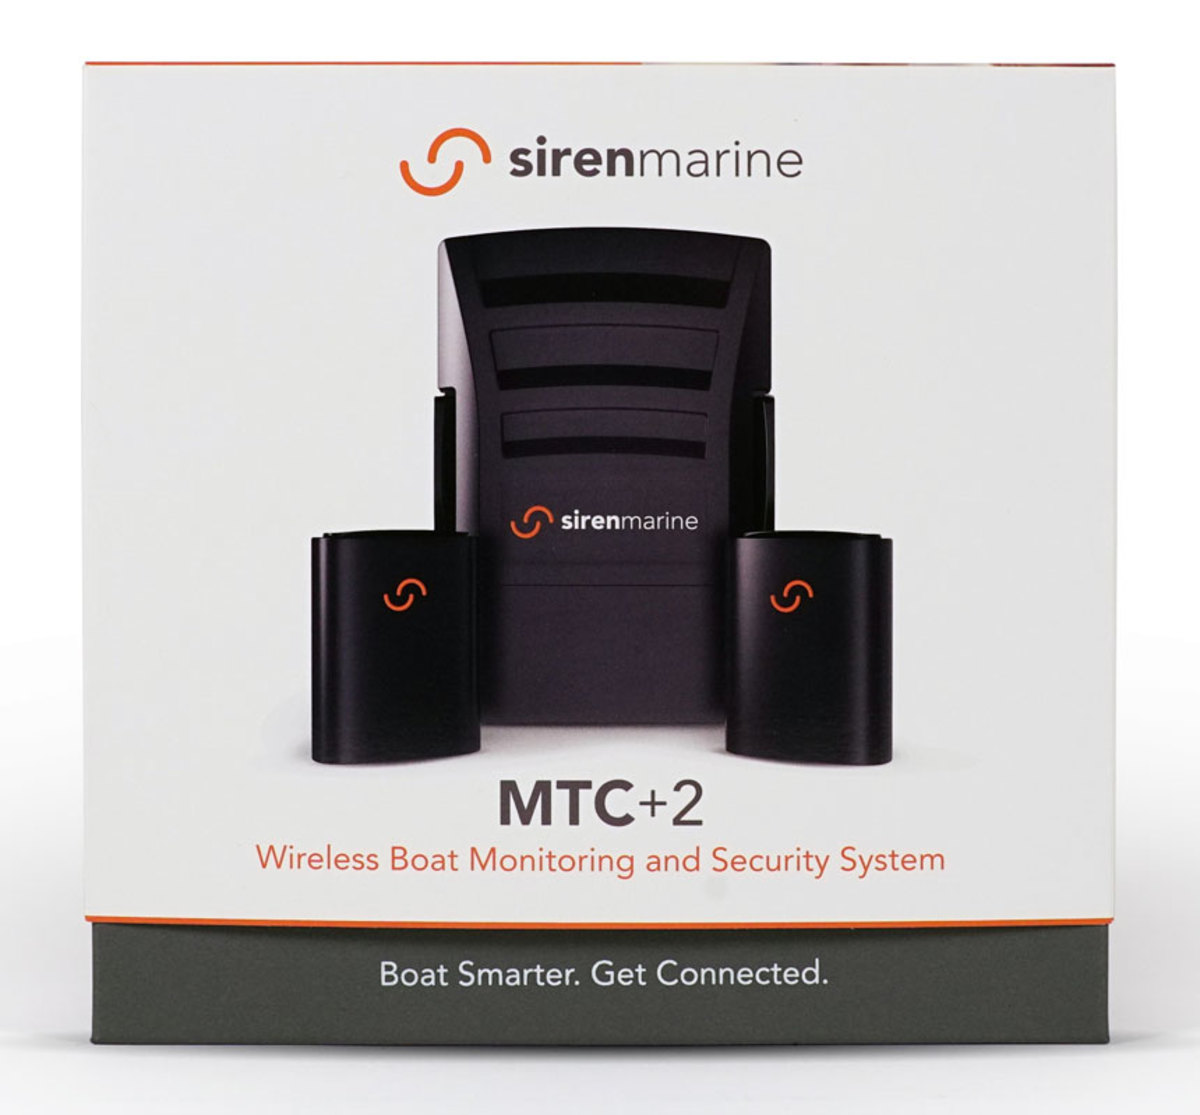 The Siren MTC+2 and two wireless sensors